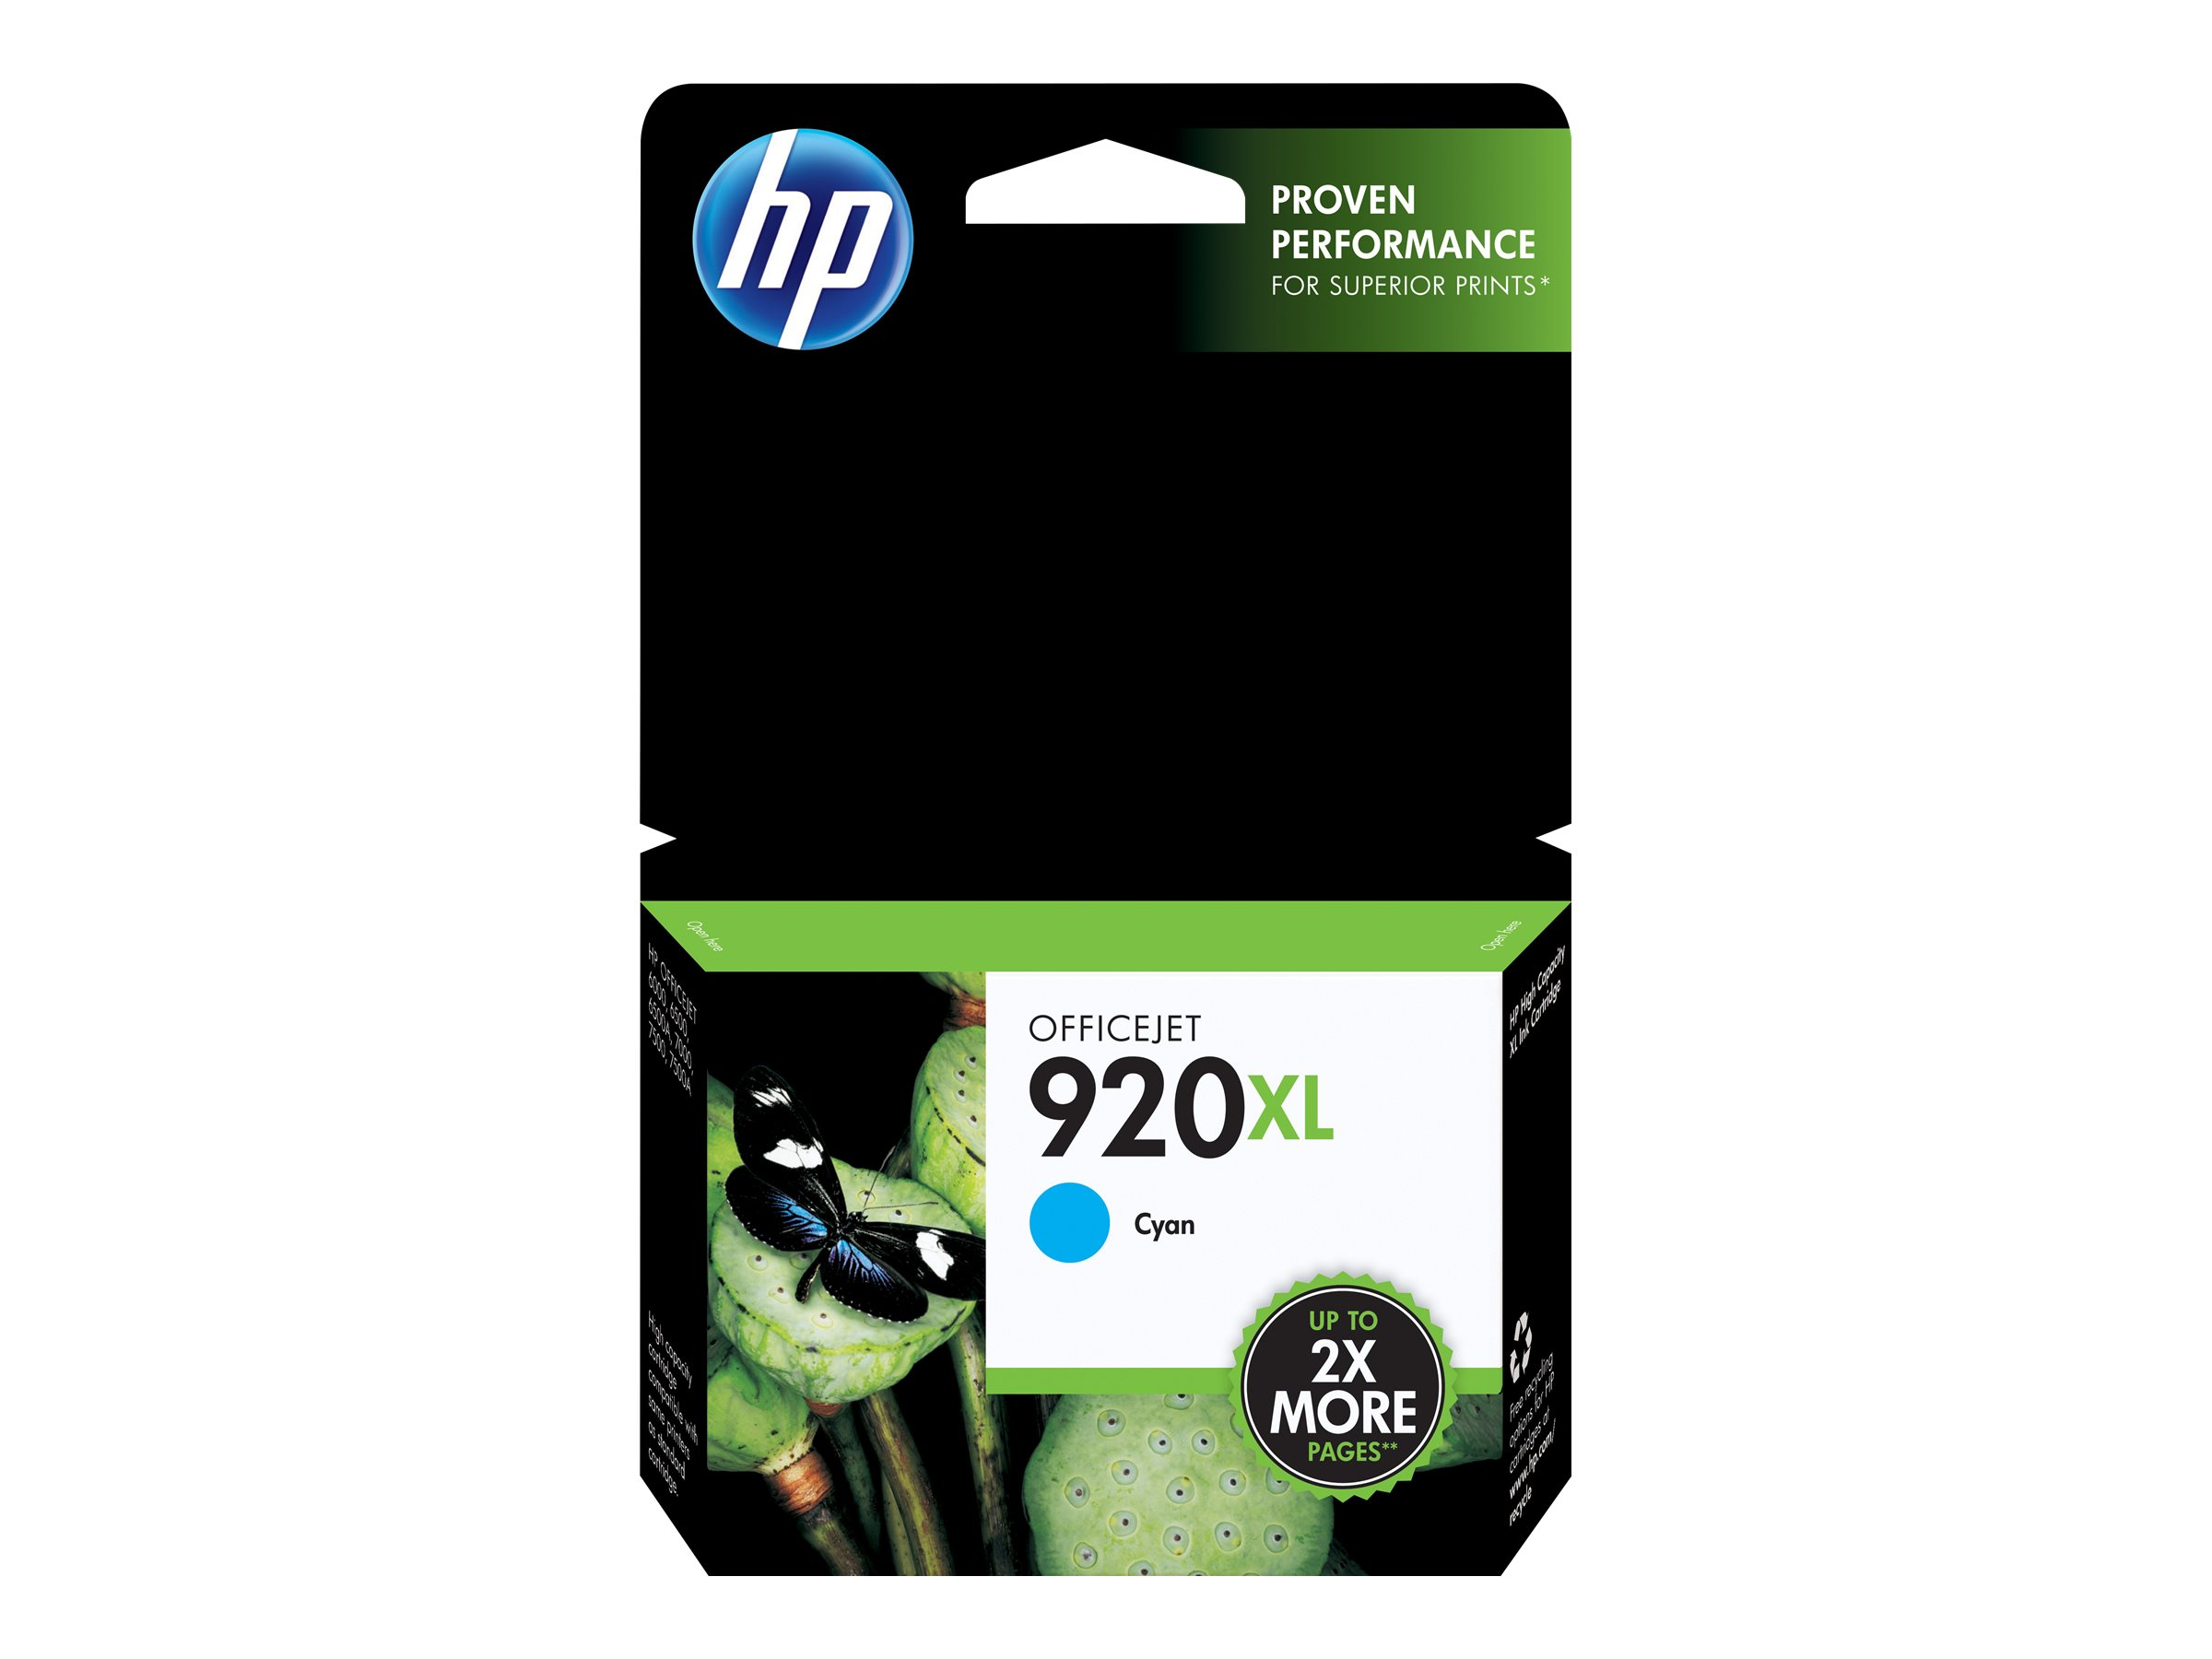 HP 920XL - High Yield - cyan - original - Officejet - ink cartridge